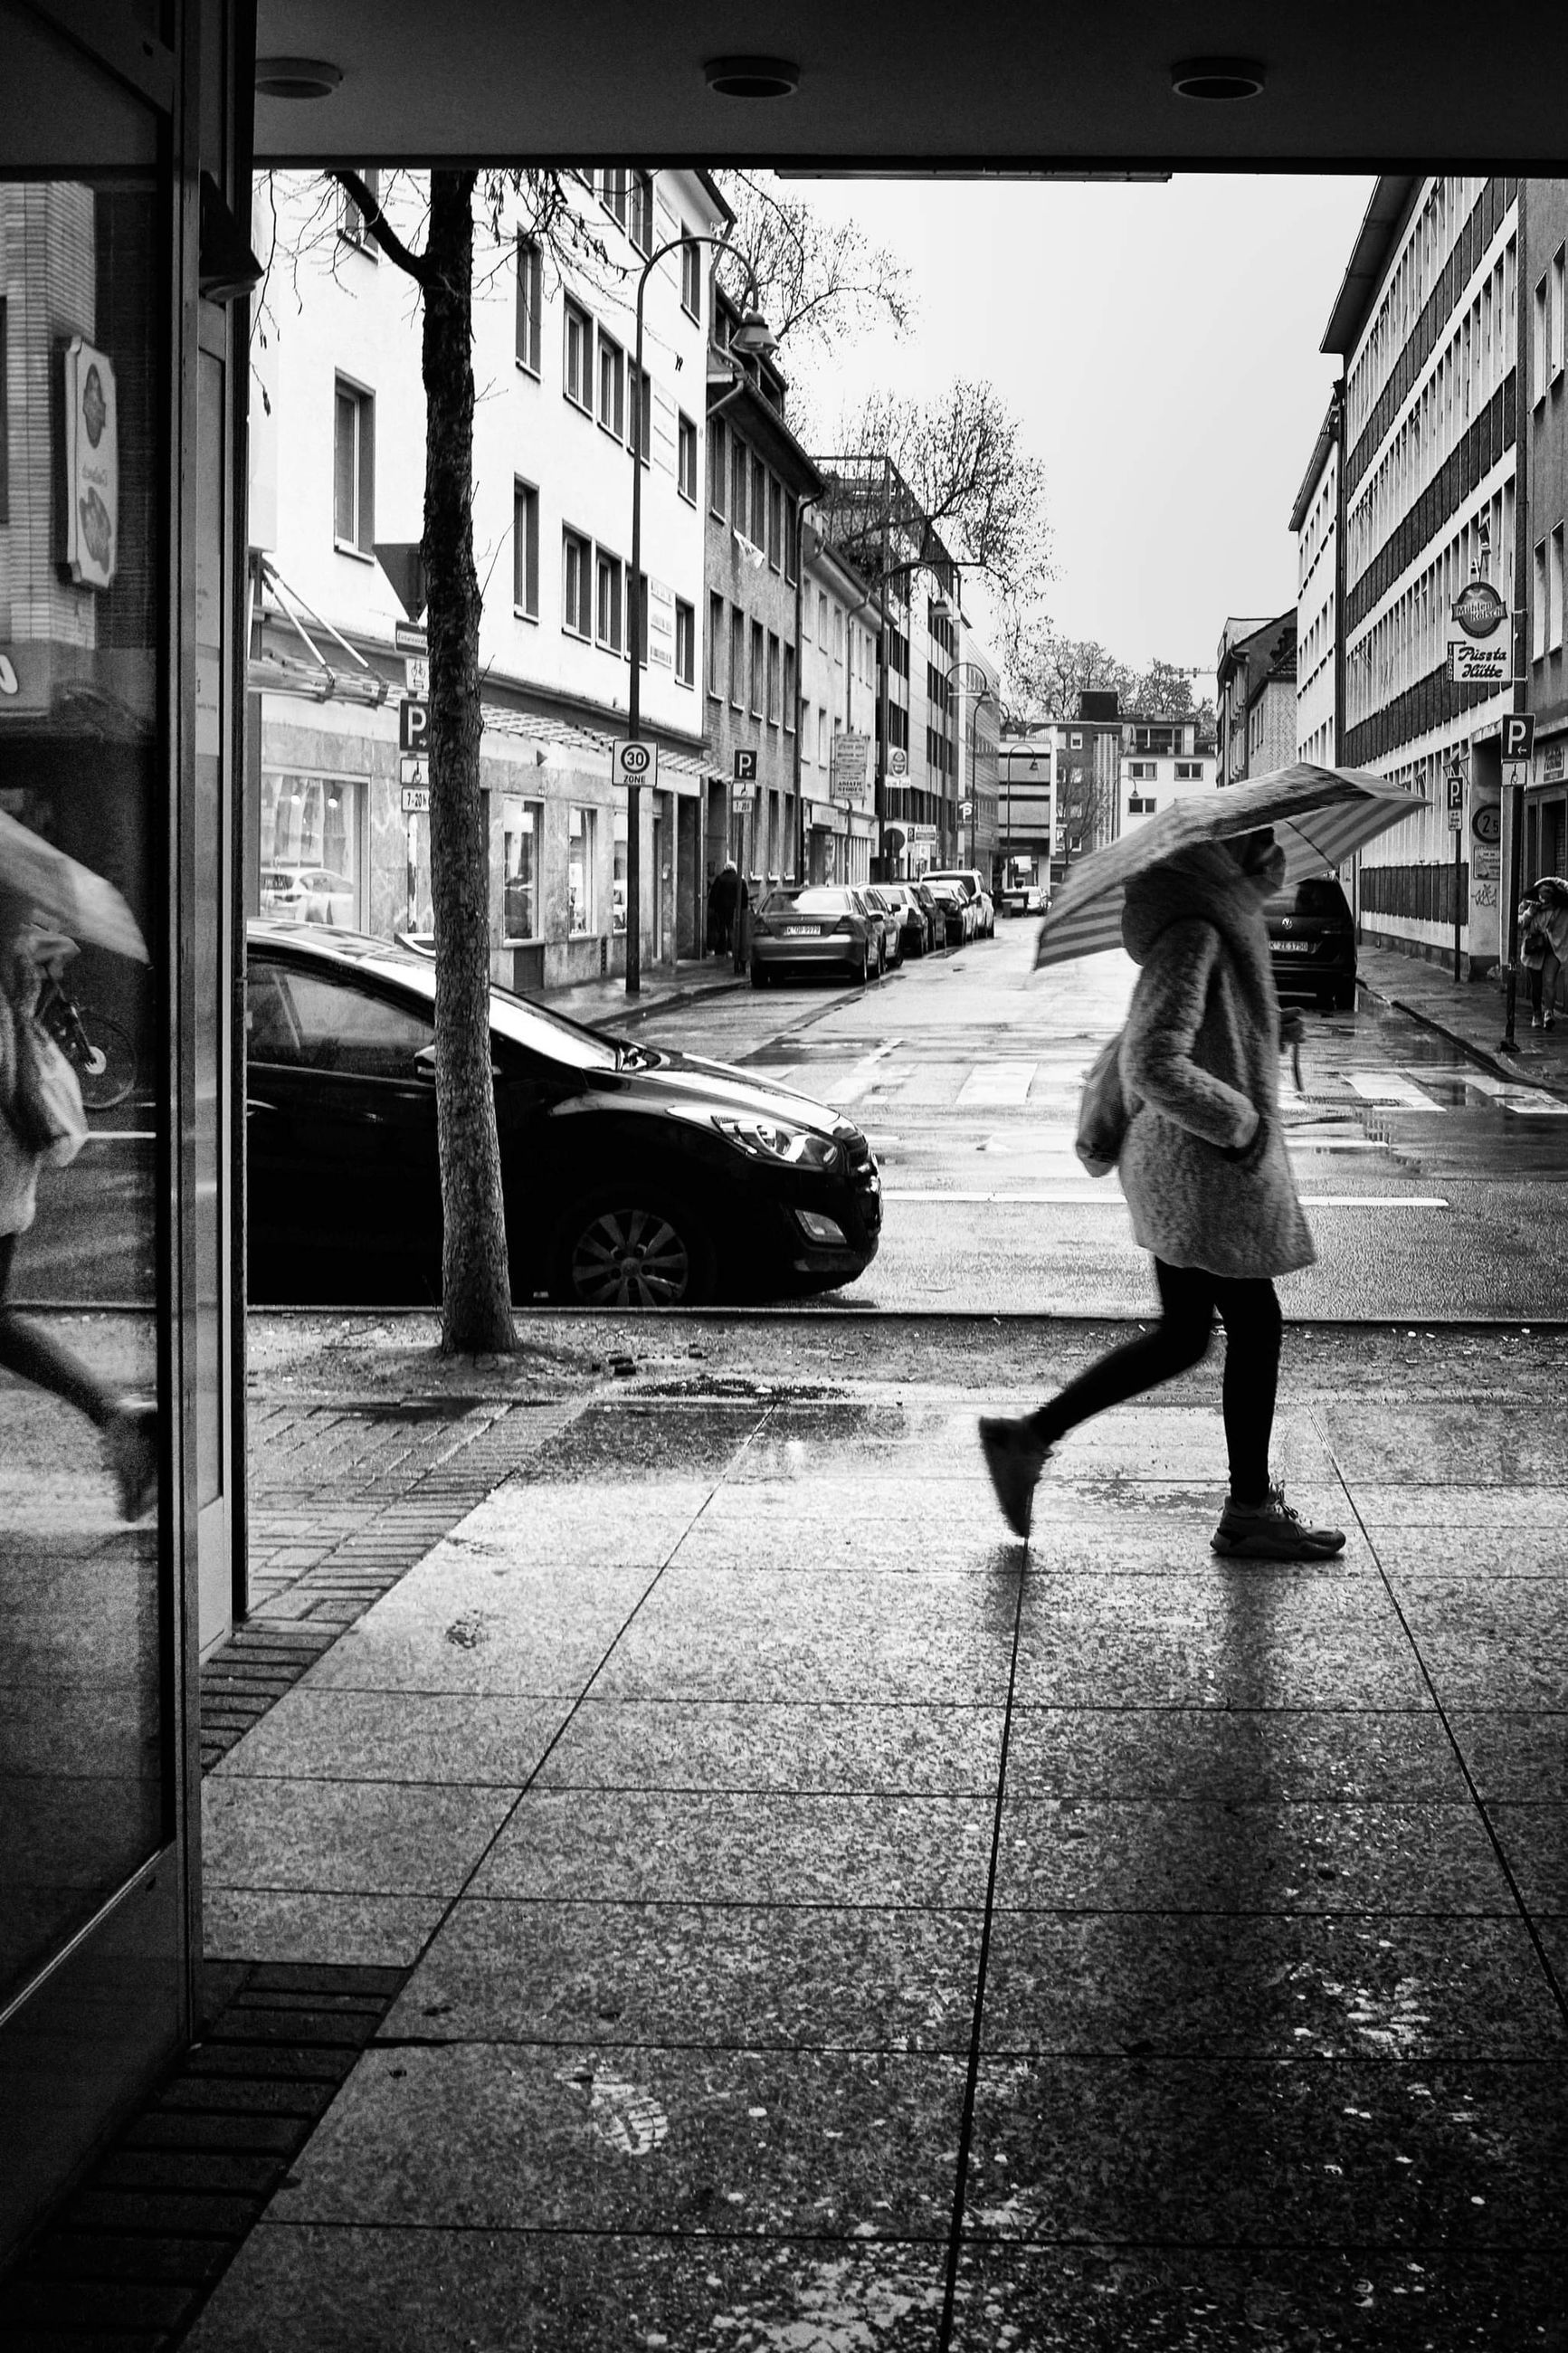 black, snapshot, road, street, architecture, white, city, black and white, full length, built structure, infrastructure, building exterior, one person, monochrome, monochrome photography, footpath, walking, transportation, day, lifestyles, city life, adult, women, sidewalk, mode of transportation, rear view, casual clothing, men, leisure activity, darkness, footwear, motion, outdoors, urban area, person, nature, city street, camera, car, on the move, building, clothing, standing, child, childhood, motor vehicle, female